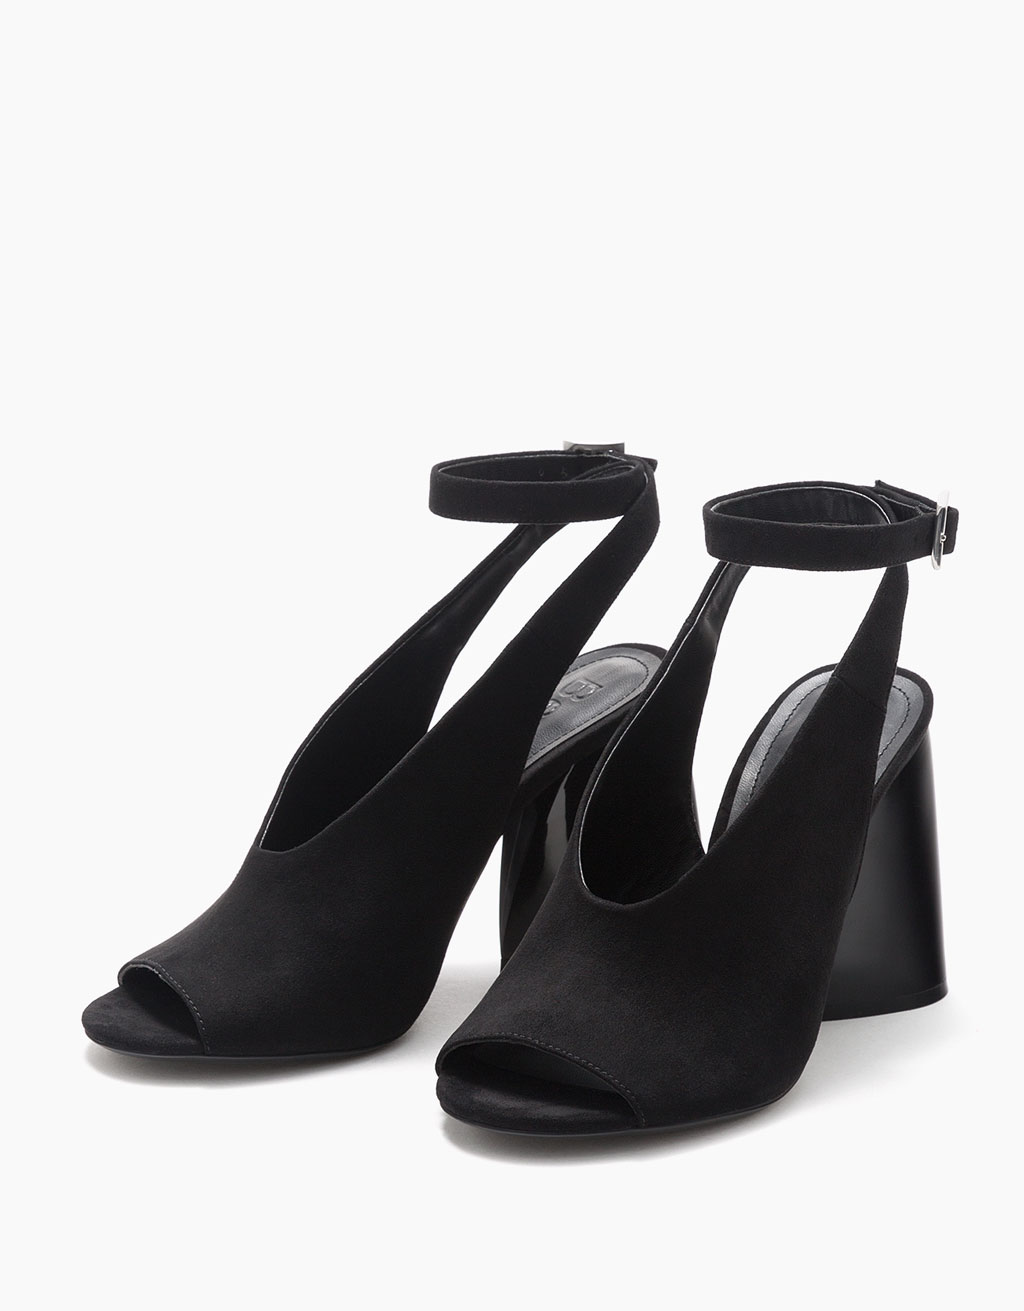 Asymmetric mid-heel sandals